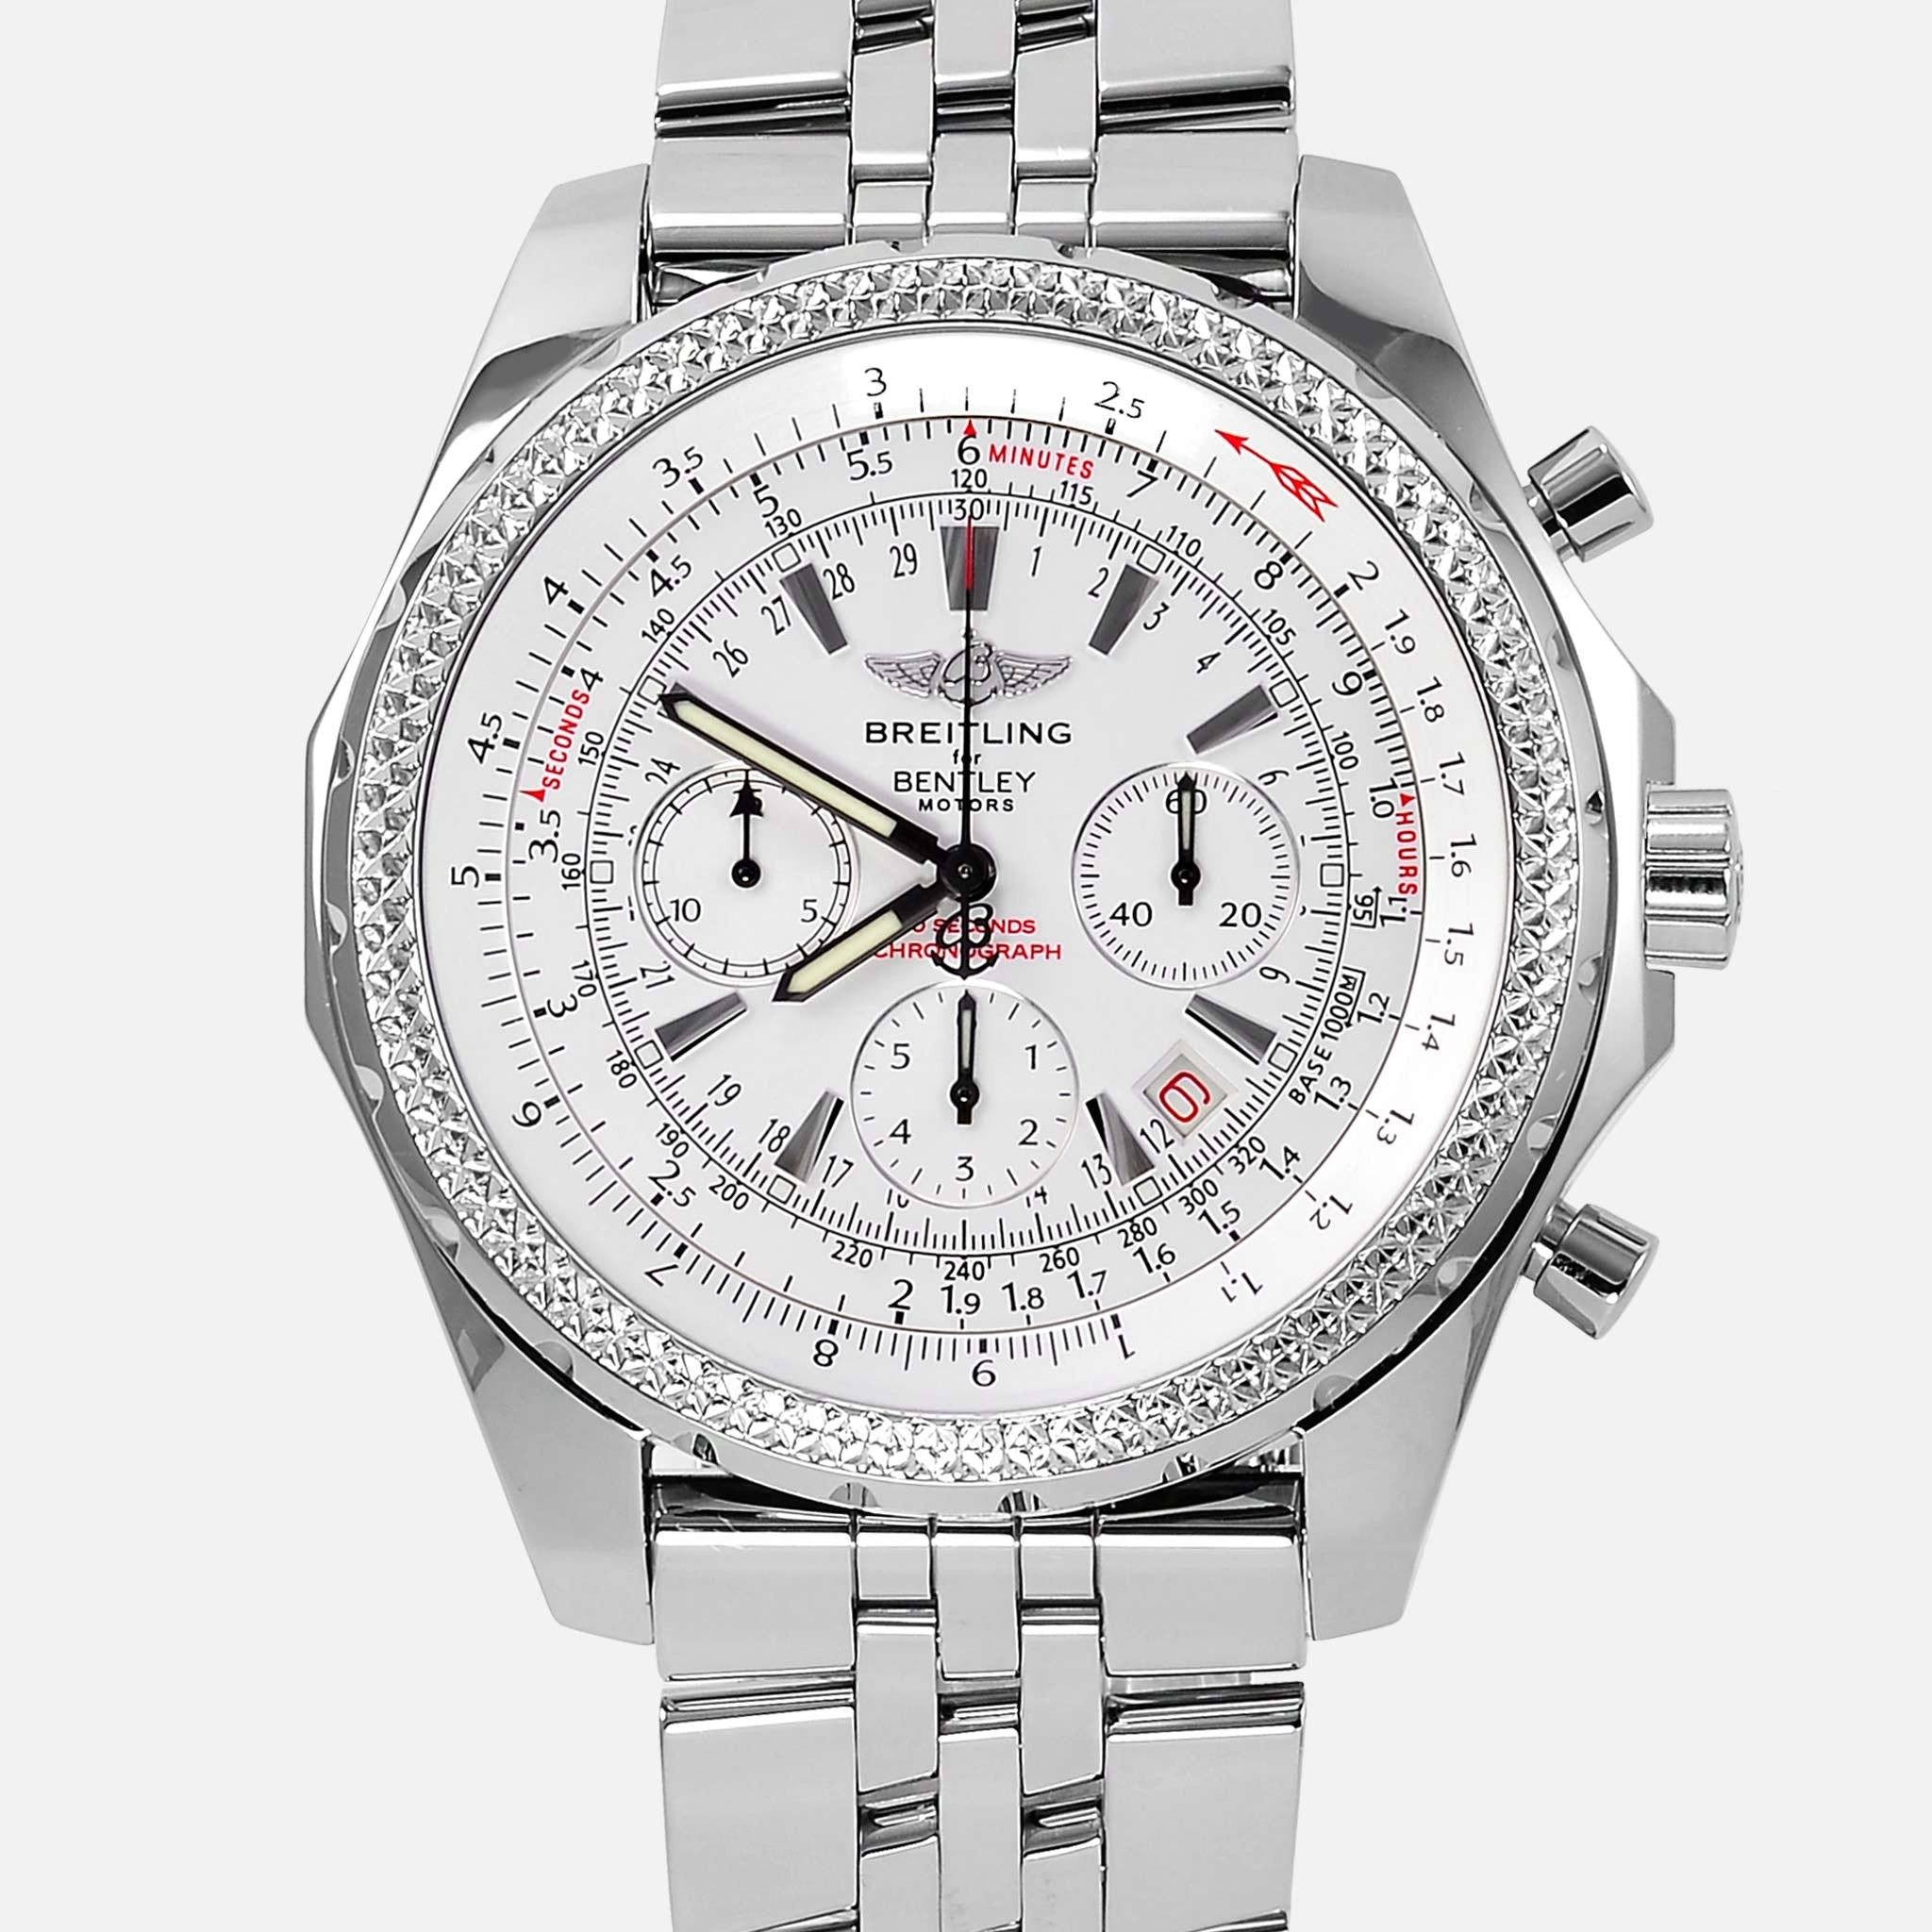 Breitling for bentley motors special white dial edition for Breitling watches bentley motors special edition a25362